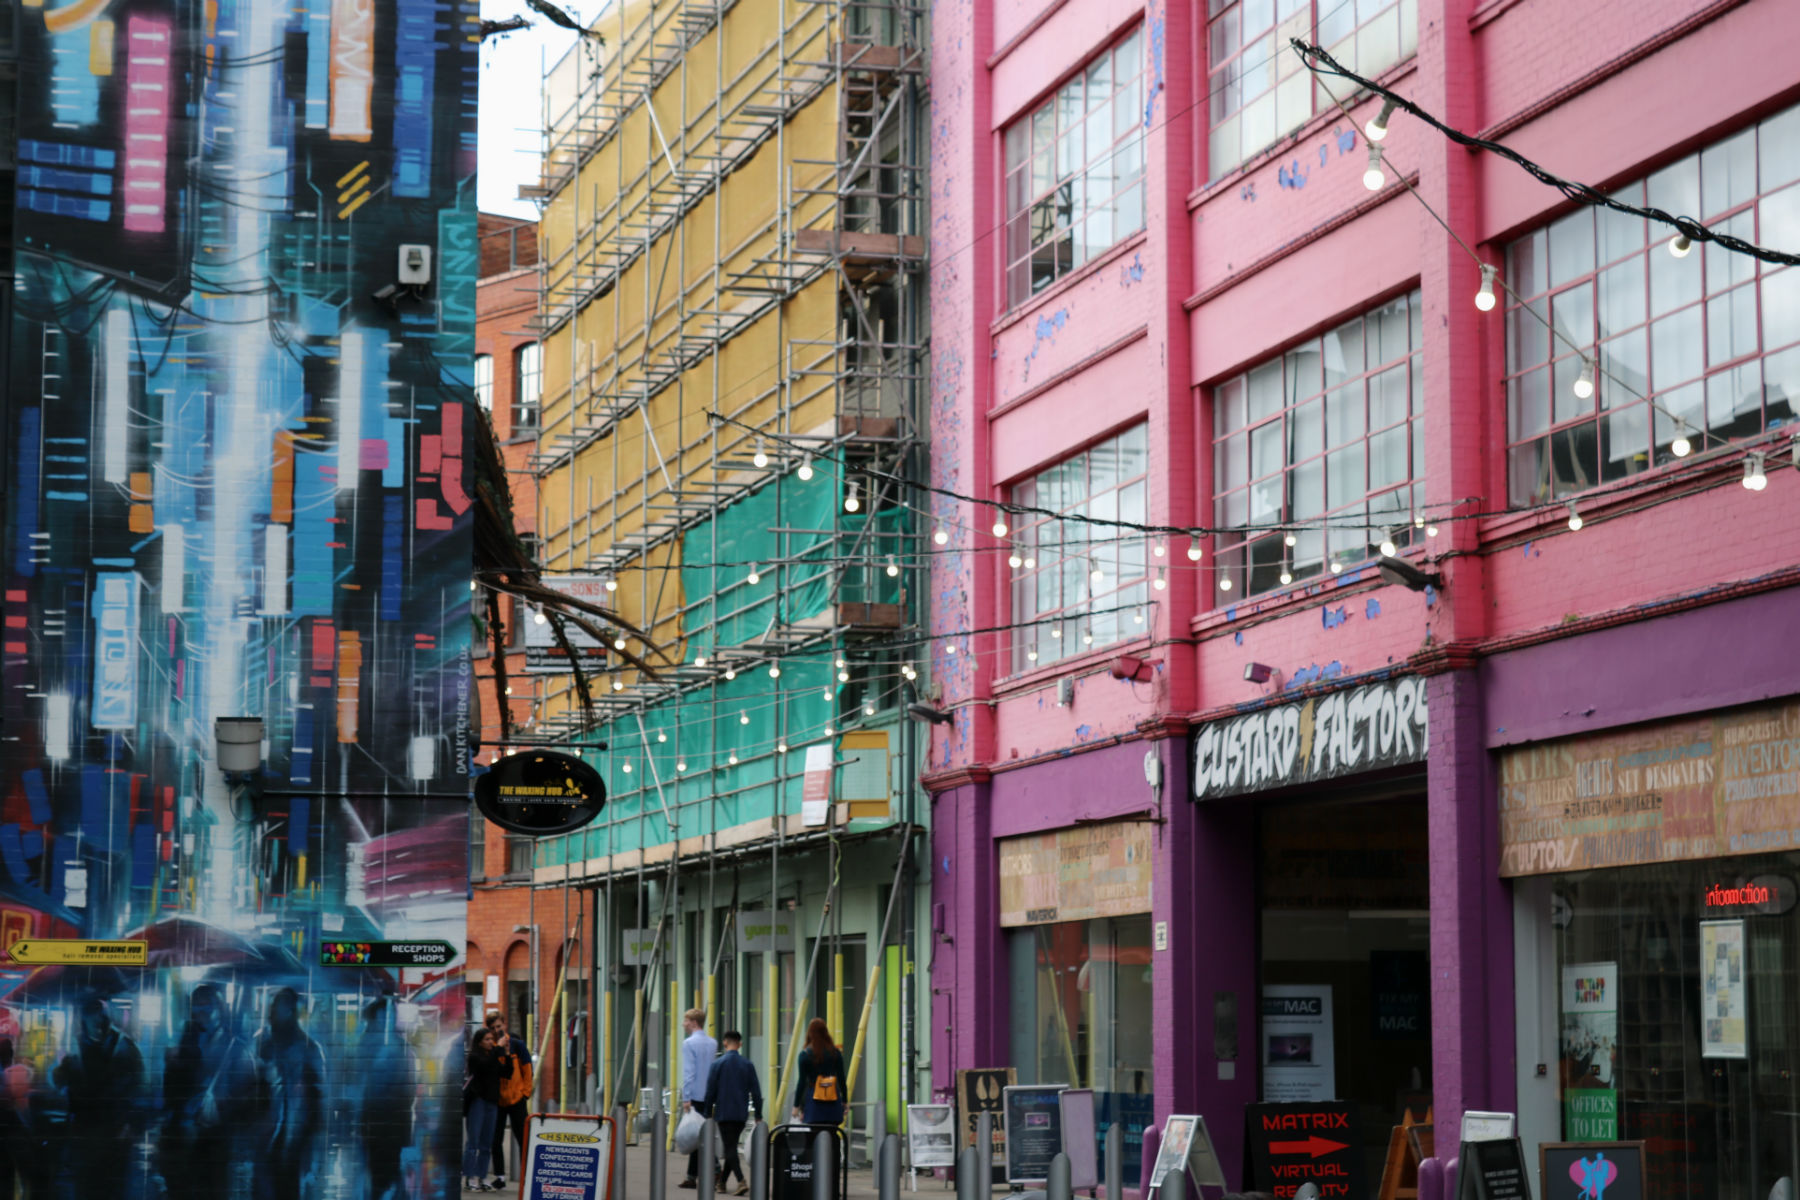 The Custard Factory Birmingham